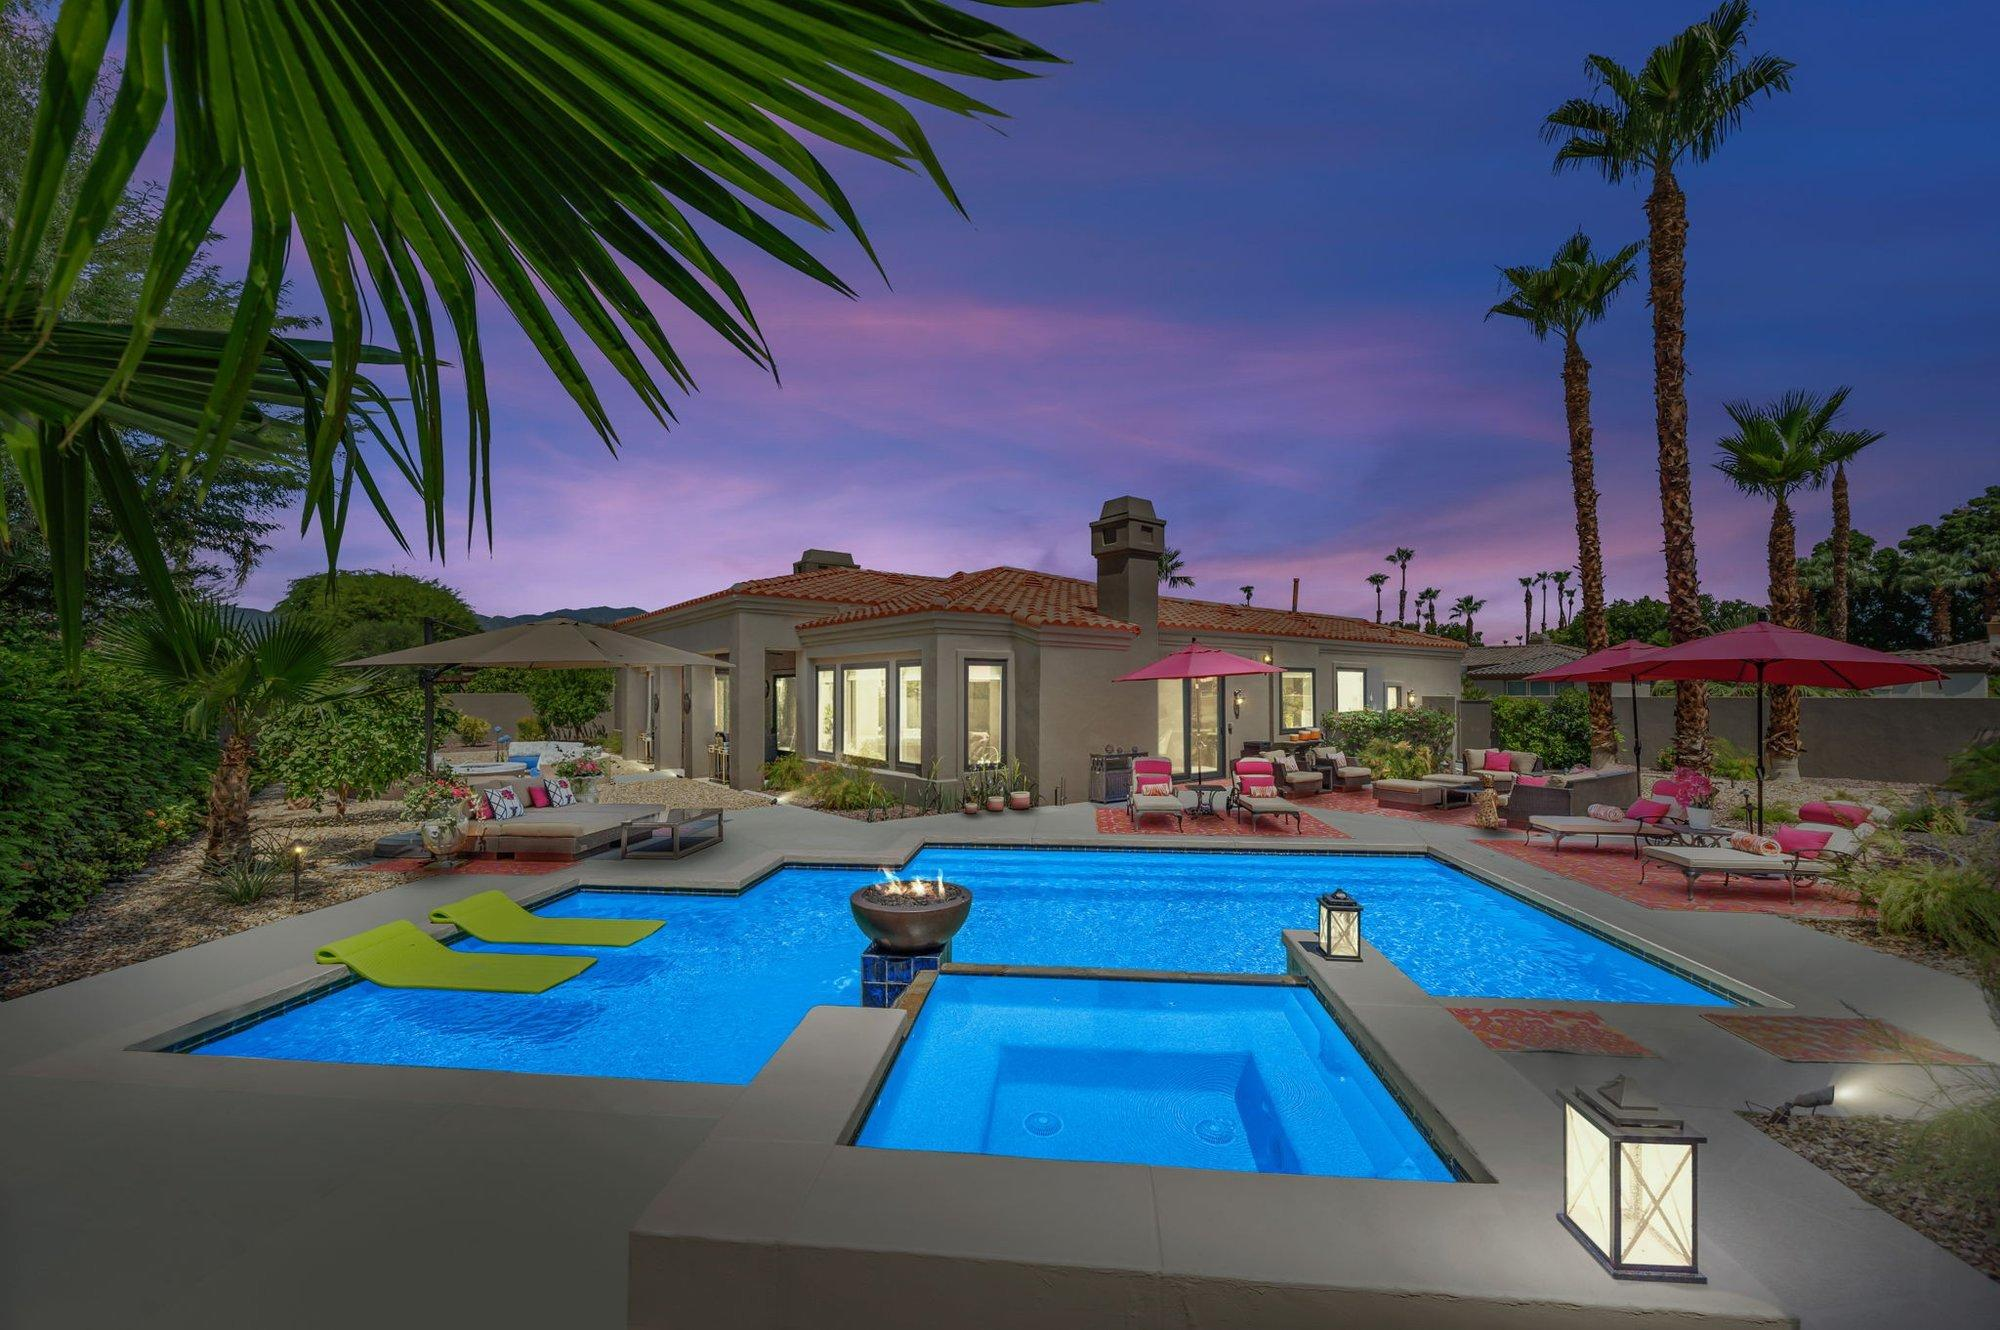 Welcome home to the gated community of Tierra Vista in Palm Desert. Your friends & family will be wowed by this gorgeous, recently remodeled jewel box of a home in this boutique community conveniently located close to everything the desert has to offer. This premium, southern lot provides room for the whole gang is perfect for entertaining year-round. Fire up the grill, sip a libation, frolic in the saltwater pool & spa, or gather around the giant fire pit, & watch the sunsets while taking in the beautiful landscaping from multiple patios. Inside, you'll appreciate the light & bright, open feel of the great room. Just off the entrance is the office that will make working a pleasure. You'll also enjoy an all-new, custom, chef's kitchen with quartz counters, Sub Zero stainless appliances, & new cabinets, framed by views to the patio & adjacent to one of the living areas. The primary bedroom suite features lovely built-ins & access to a sitting area outside. The primary bath has dual sinks, a vanity, a waterfall bath, a frameless shower, & a spectacular closet. The three guest rooms, including the detached casita, are just the right size. This home has been recently painted inside & out, has new pool equipment, a tankless water heater, HVAC units, windows, sliders, flooring, designer window treatments, lighting, and custom shutters. Tierra Vista is close to world-class golf, tennis, pickleball, hiking, biking, dining, theaters, & PSP airport. Low HOA's to boot!